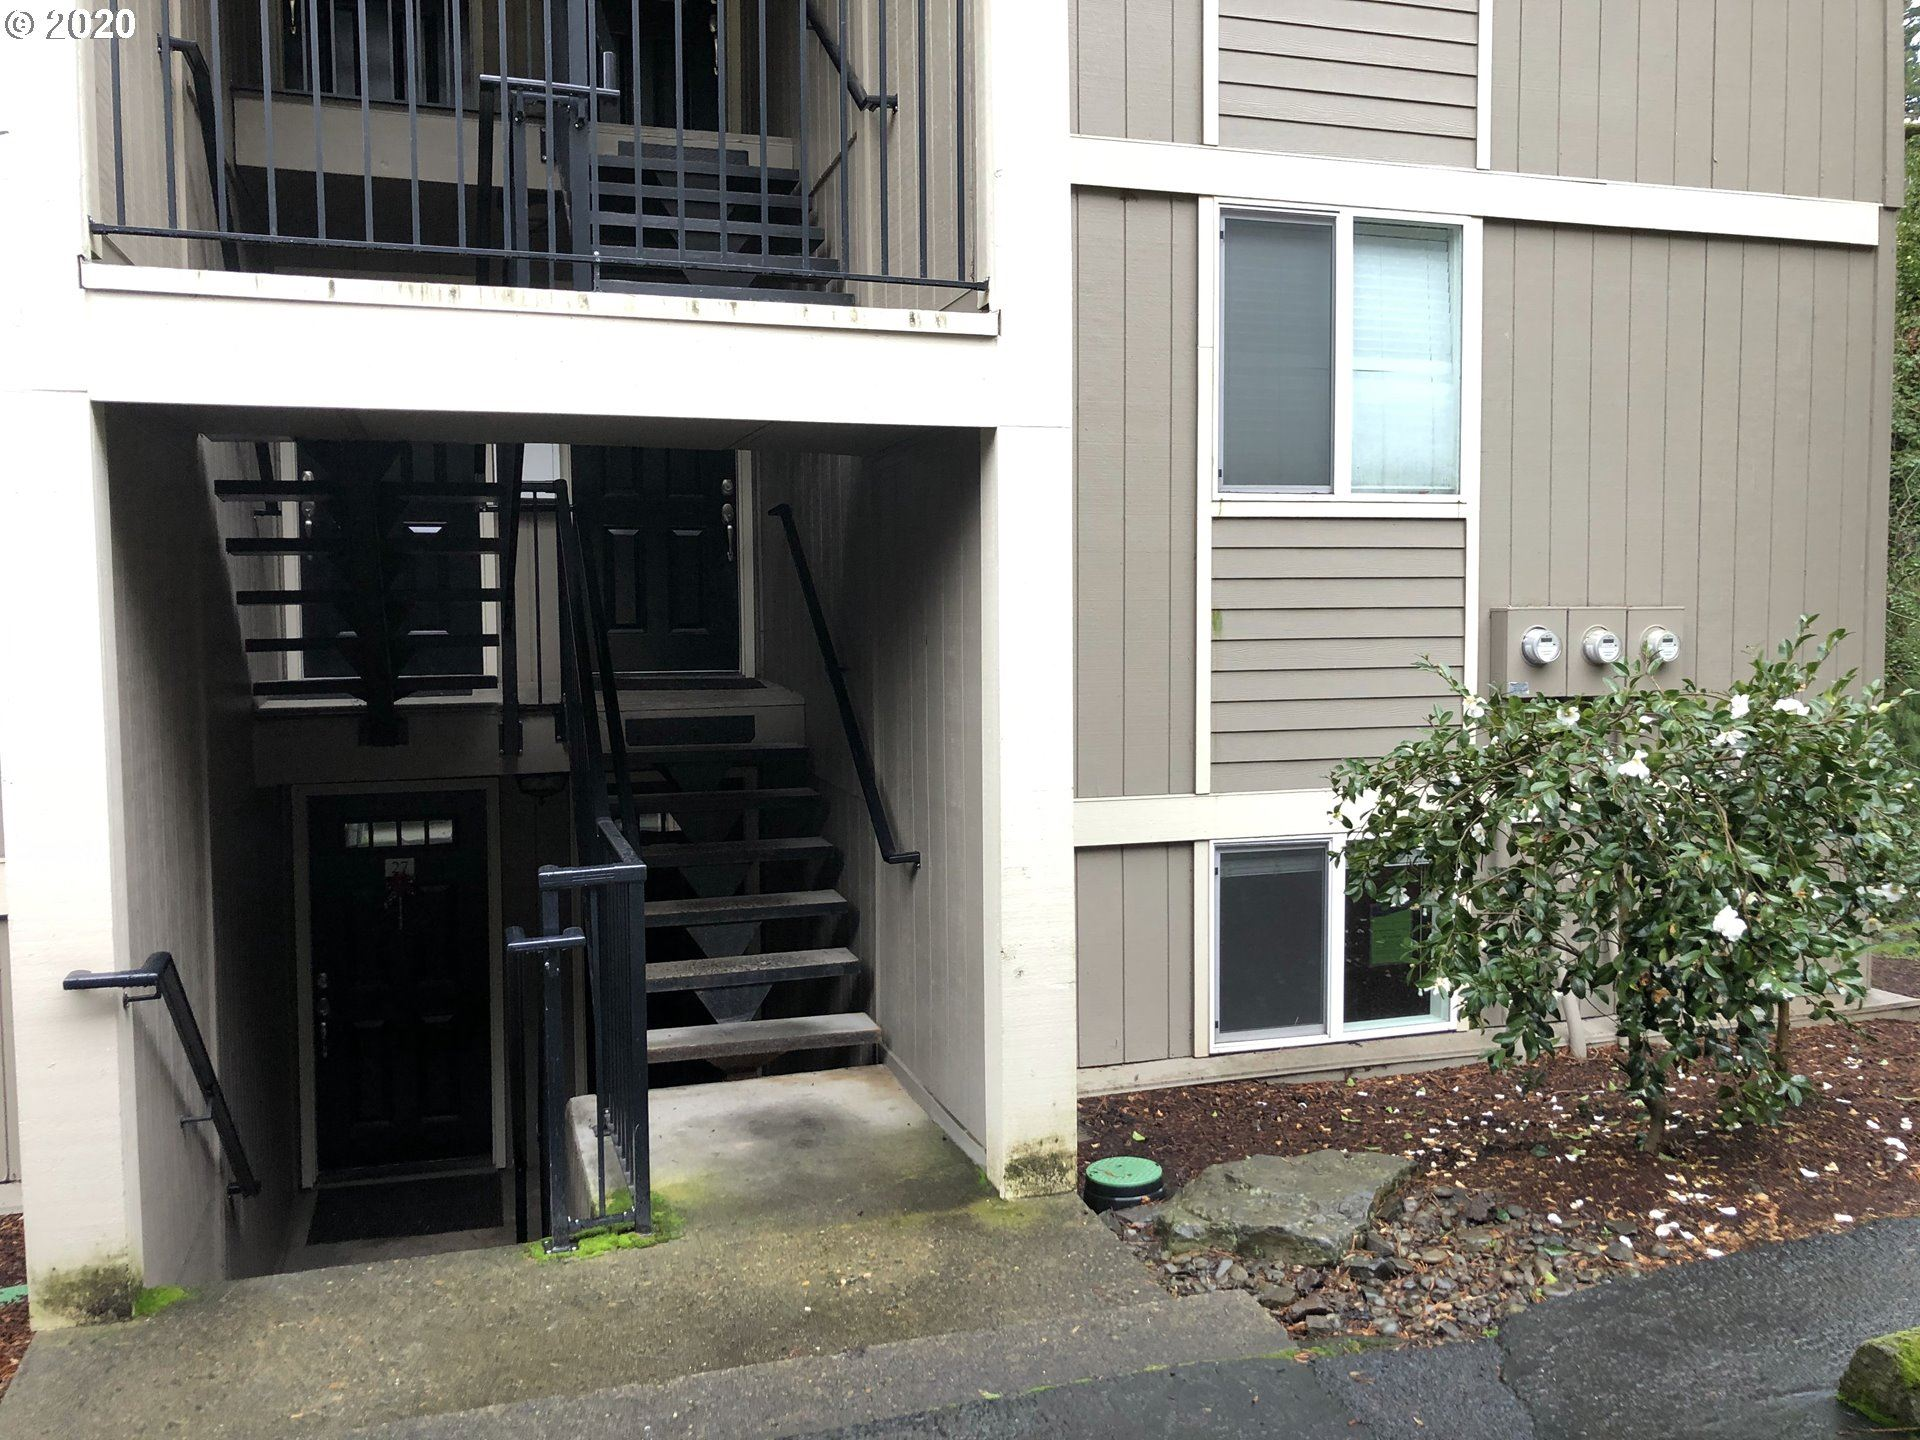 2680 SW 87TH AVE #28, Portland, OR 97225 - MLS#: 20027011